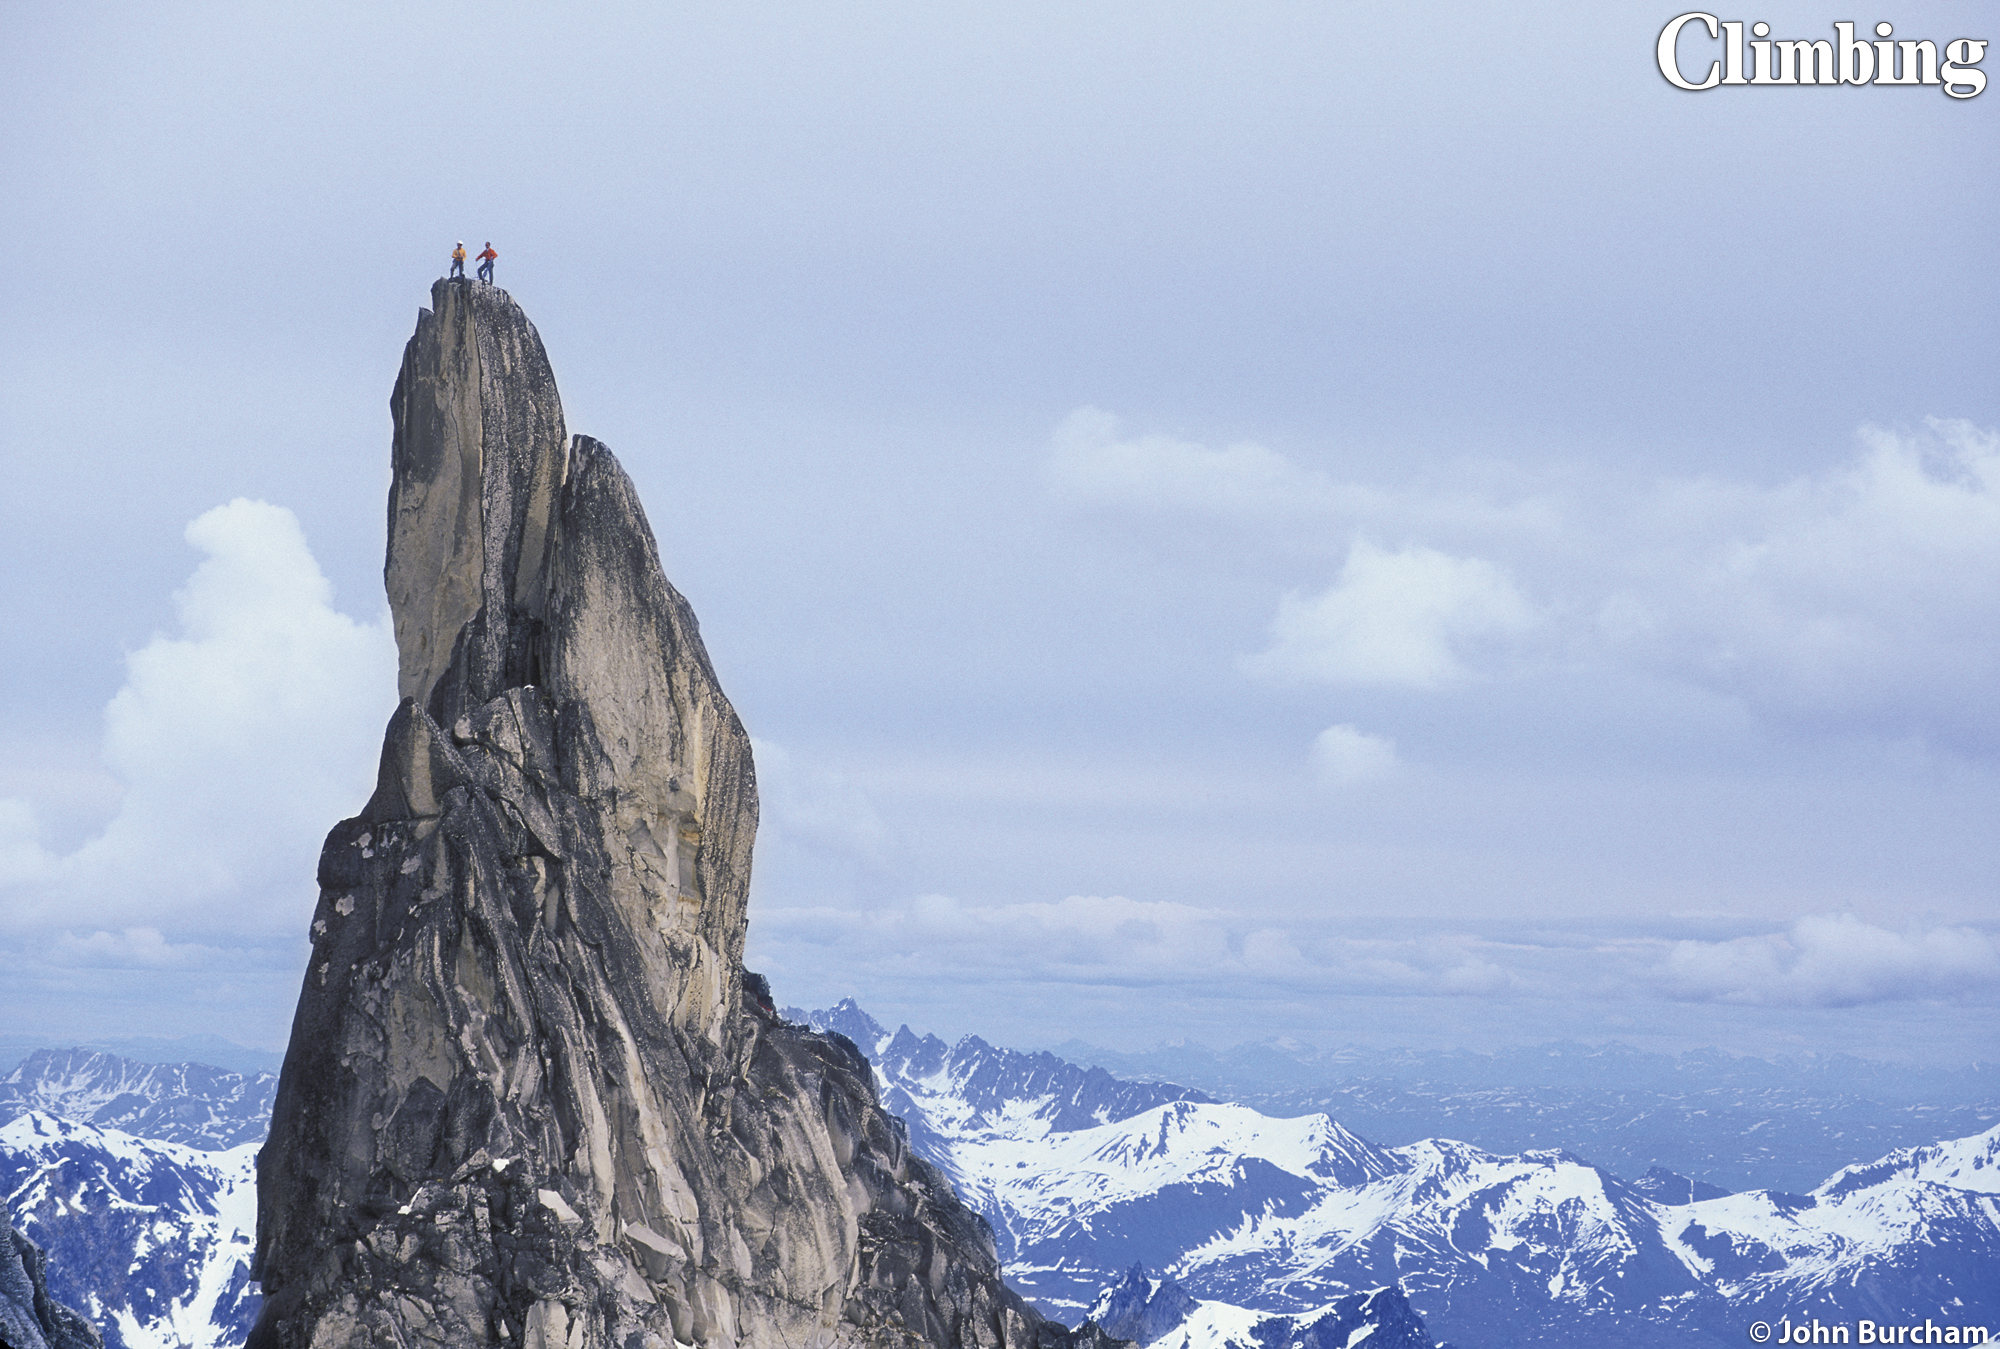 Foto: Plunger Mountain/http://www.mountainproject.com/v/108152299